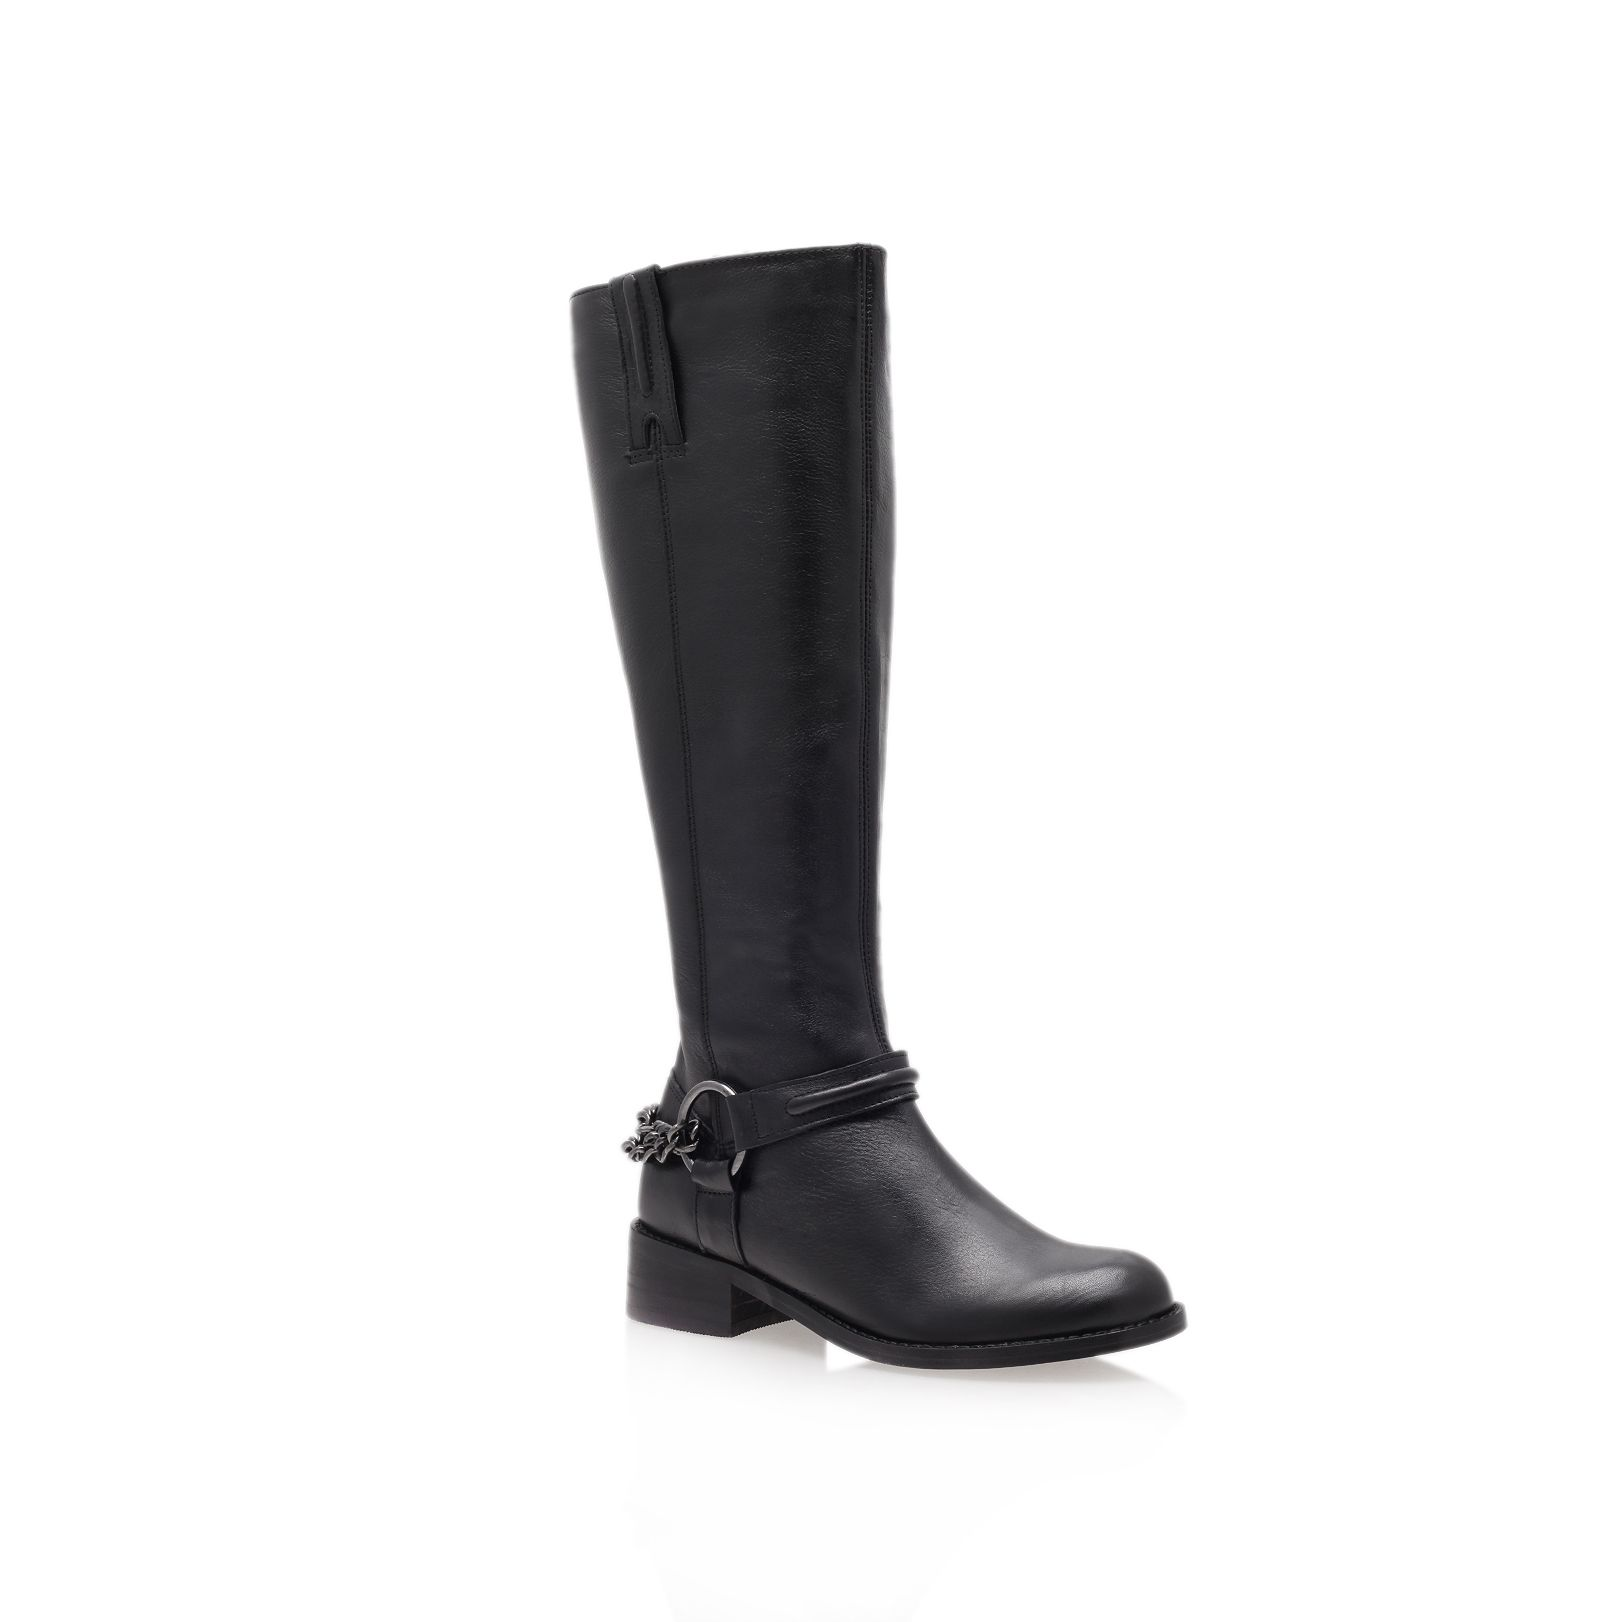 Carvela Kurt Geiger Paula Low Heel Knee Boots In Black | Lyst